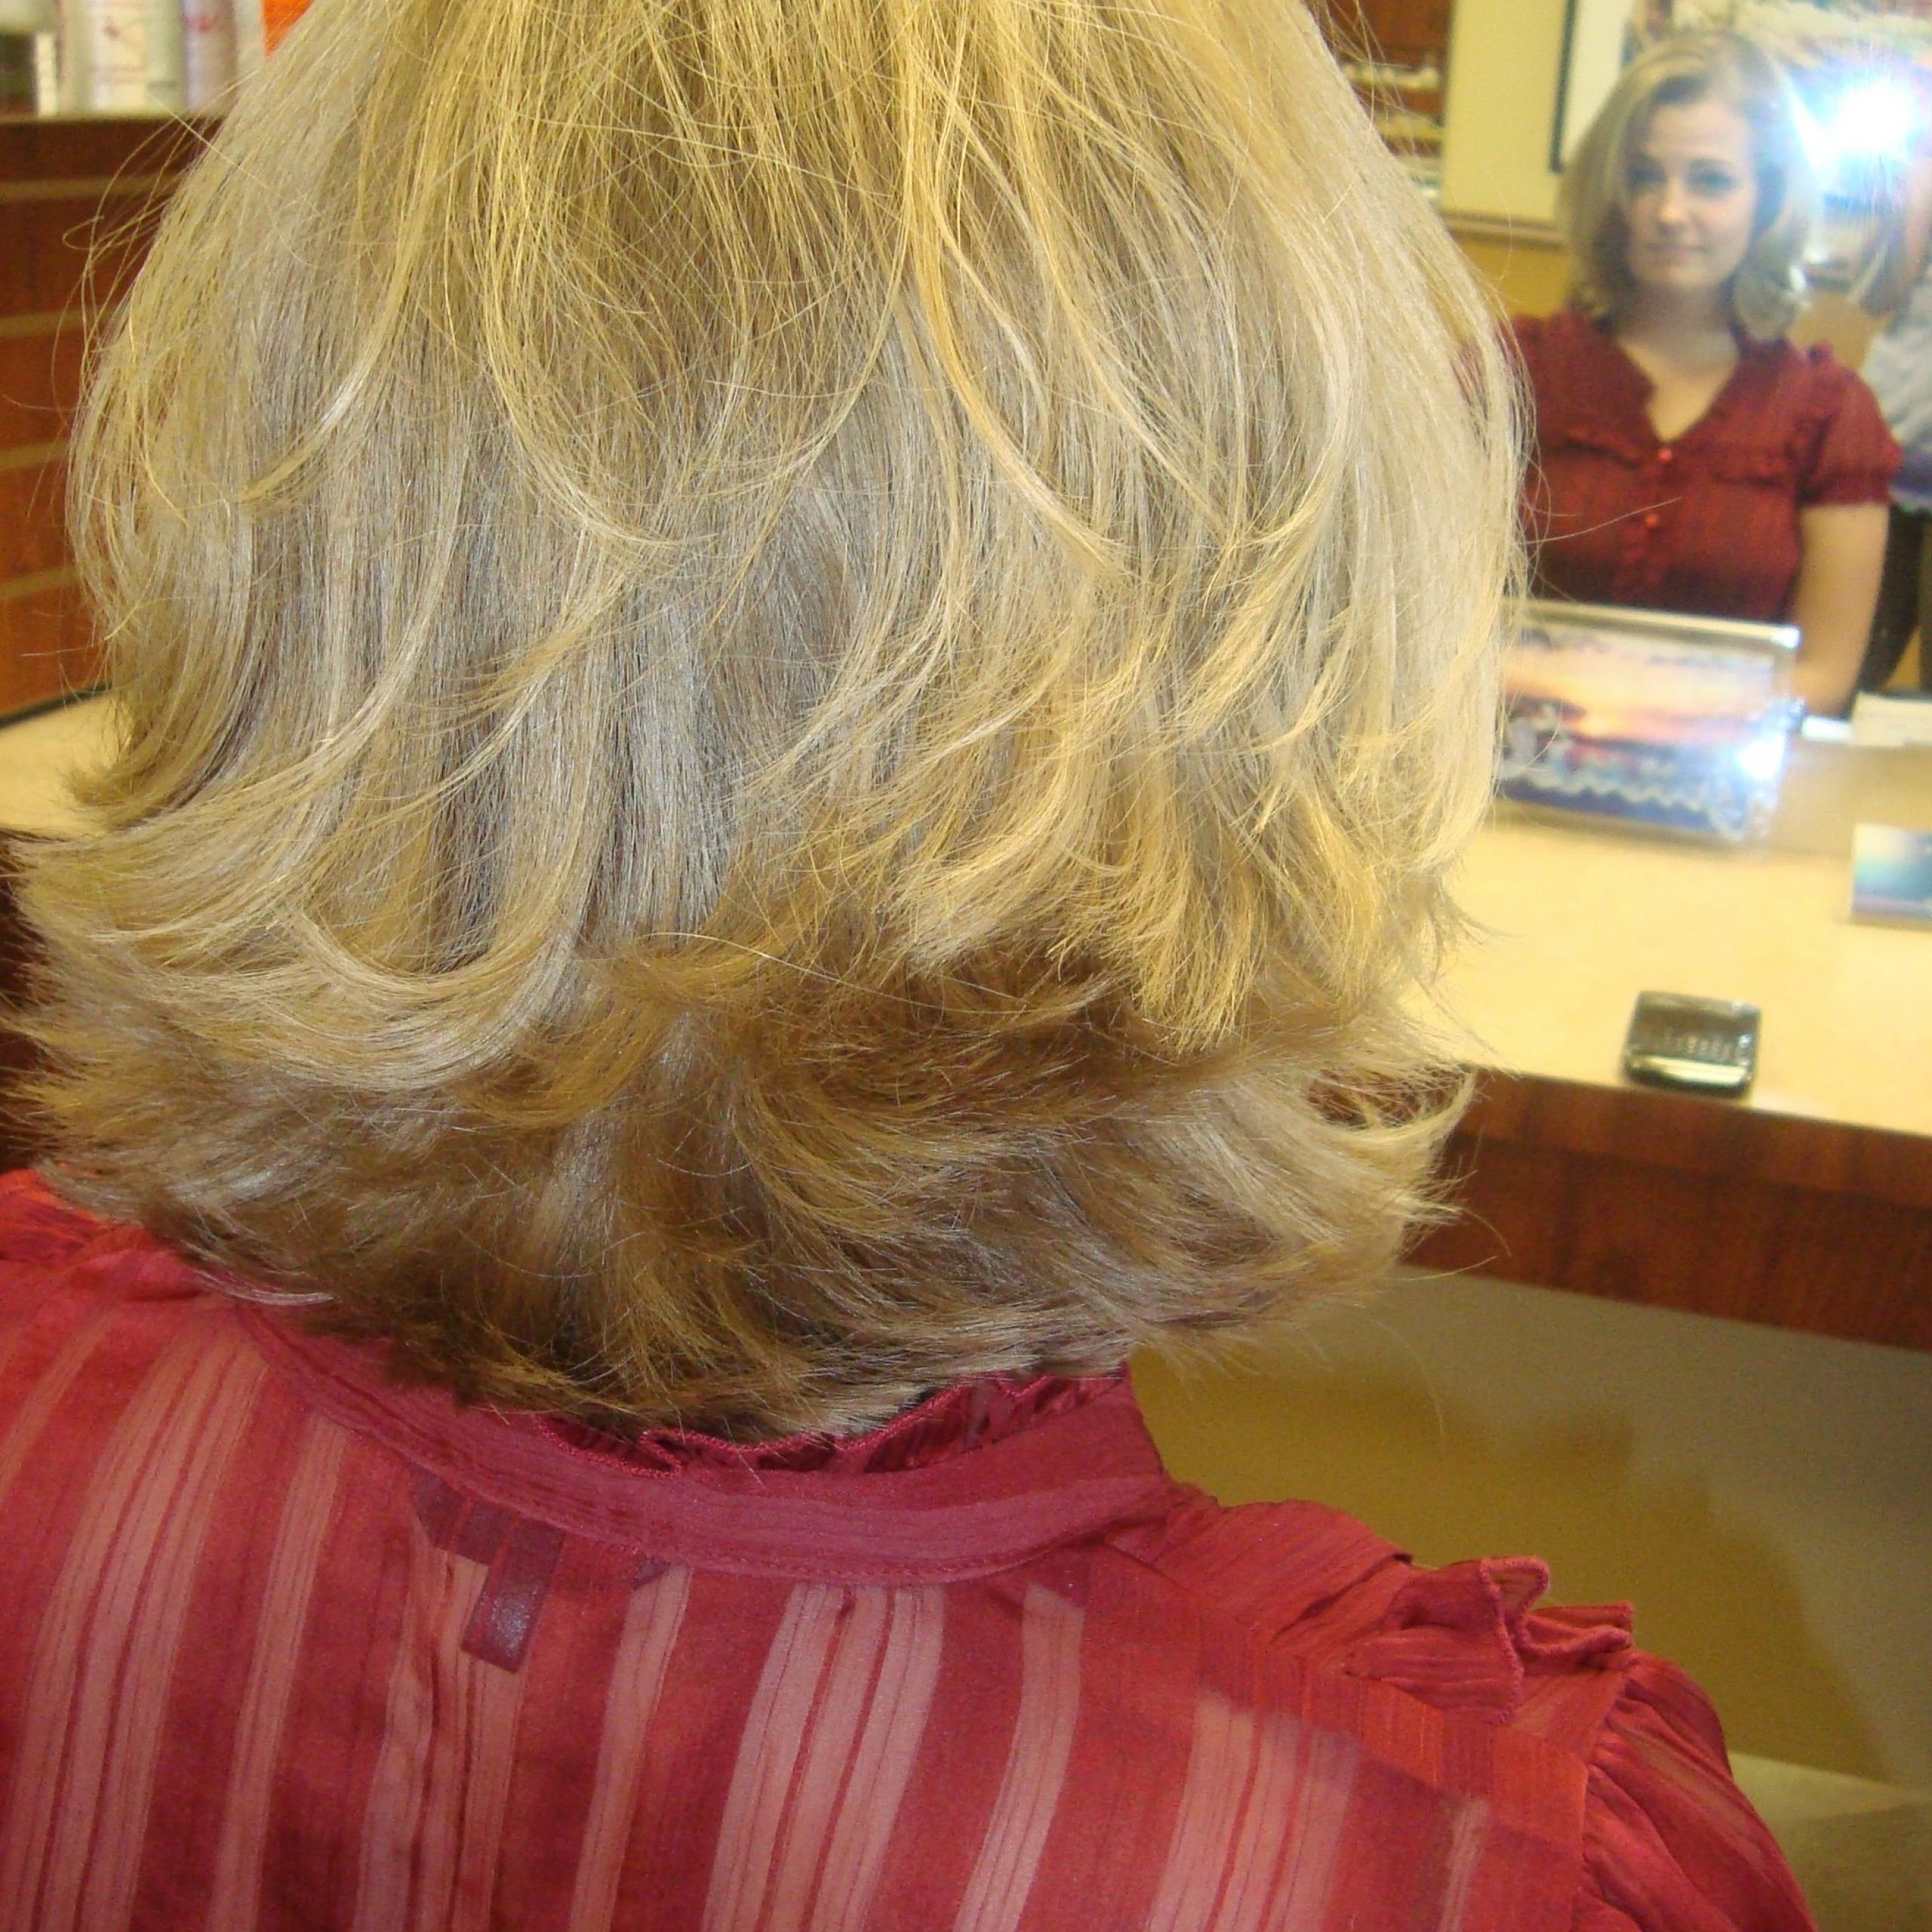 Short, Thick, And Blonde Flipped Hair, Low Maintenance And Intended For Preferred Medium Haircuts With Flipped Ends For Thick Hair (View 7 of 20)